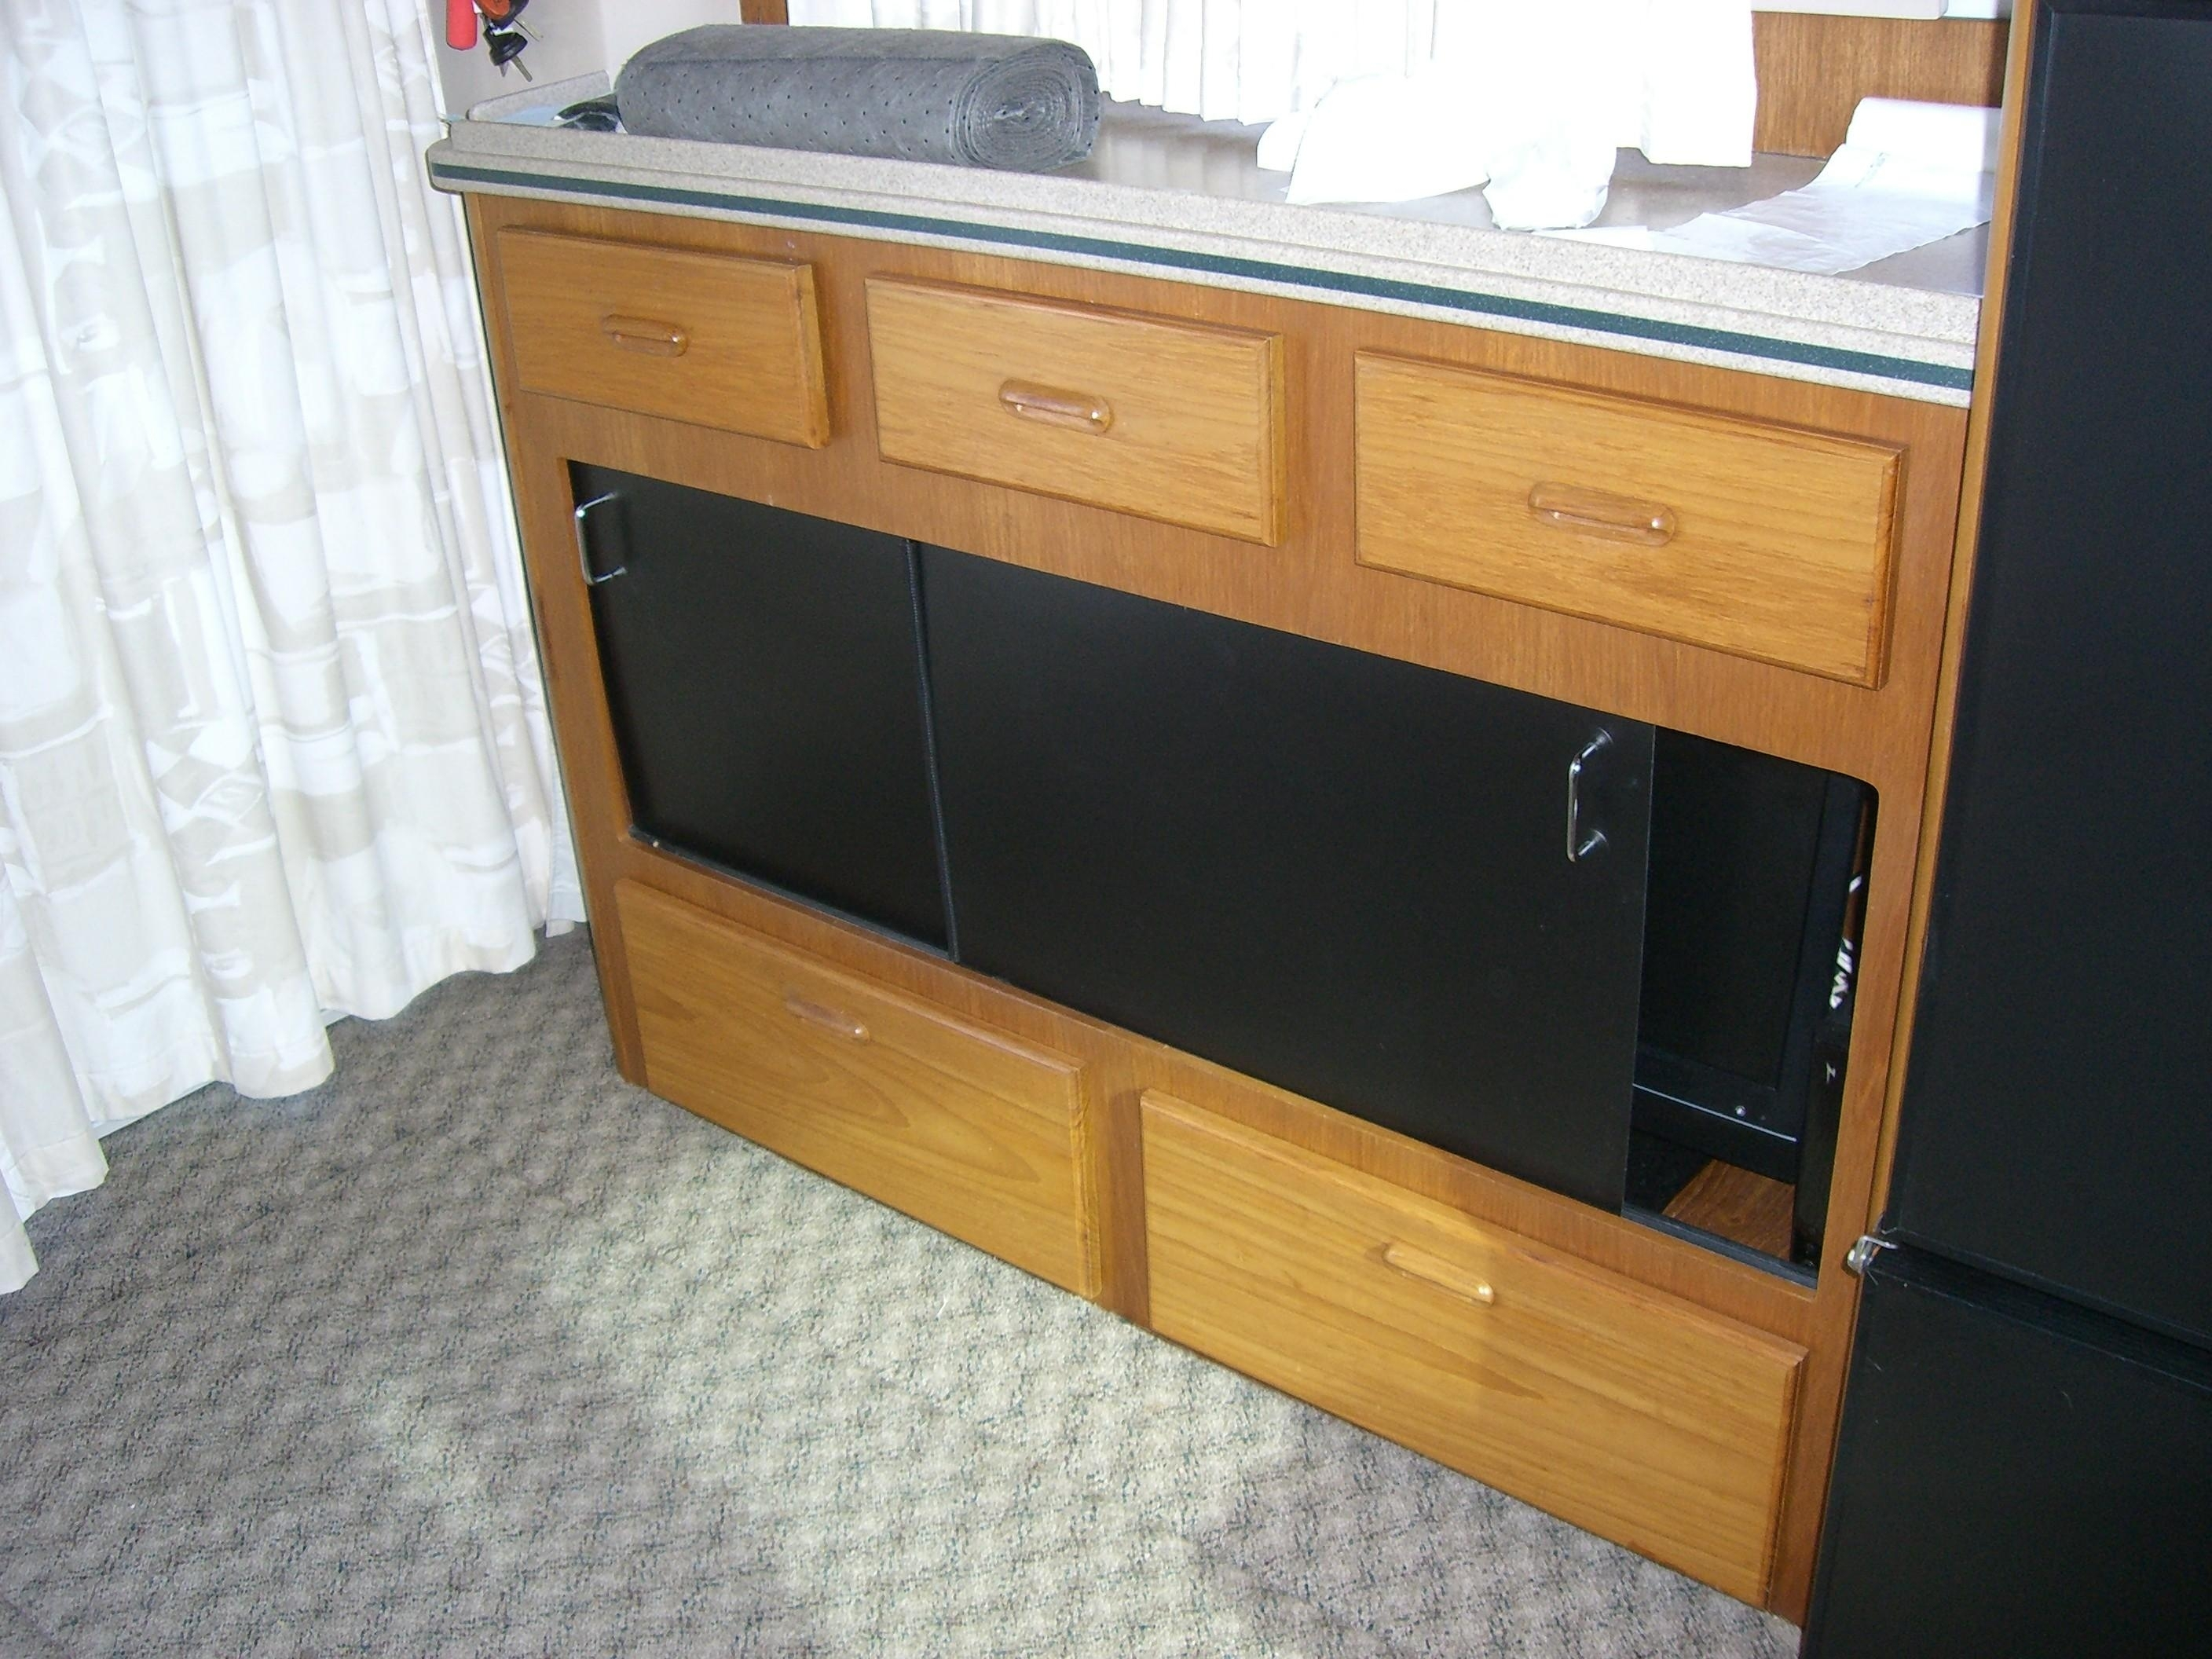 Used Mainship 39 Yachts For Sale In Maryland- Denison Yachting with regard to Mikelson Sideboards (Image 25 of 30)